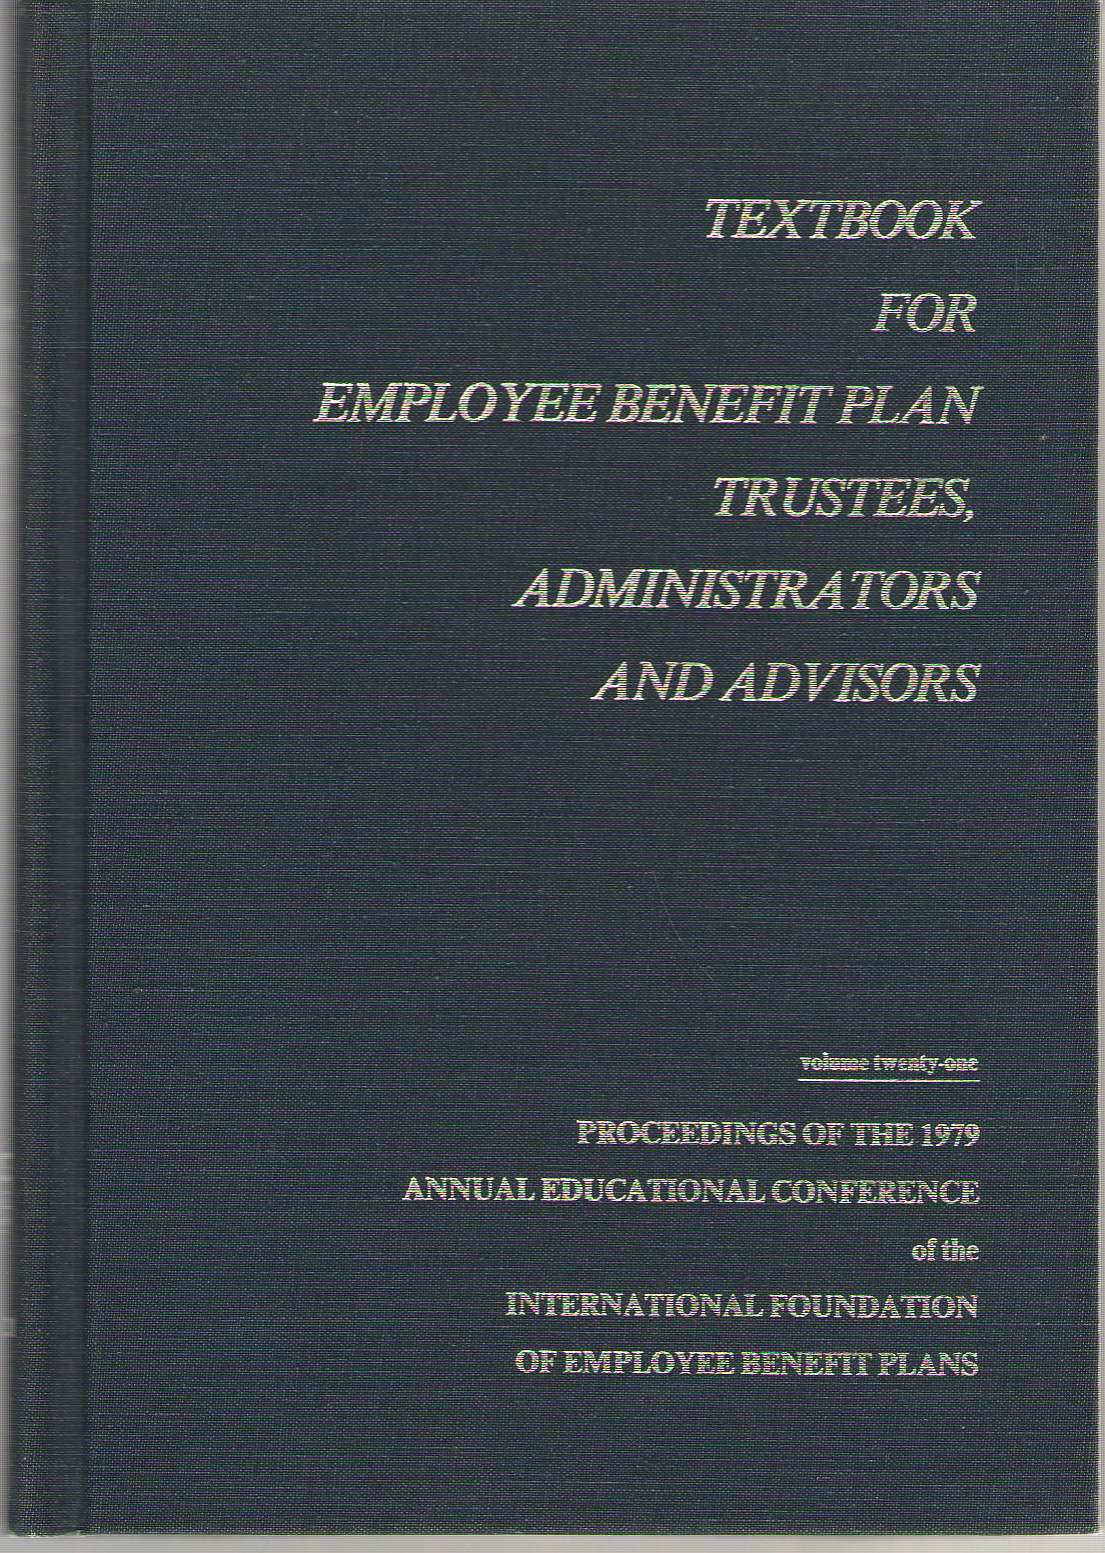 Image for Textbook For Employee Benefit Plan Trustees, Administrators And Advisors Proceedings of the 1979 Annual Educational Conference